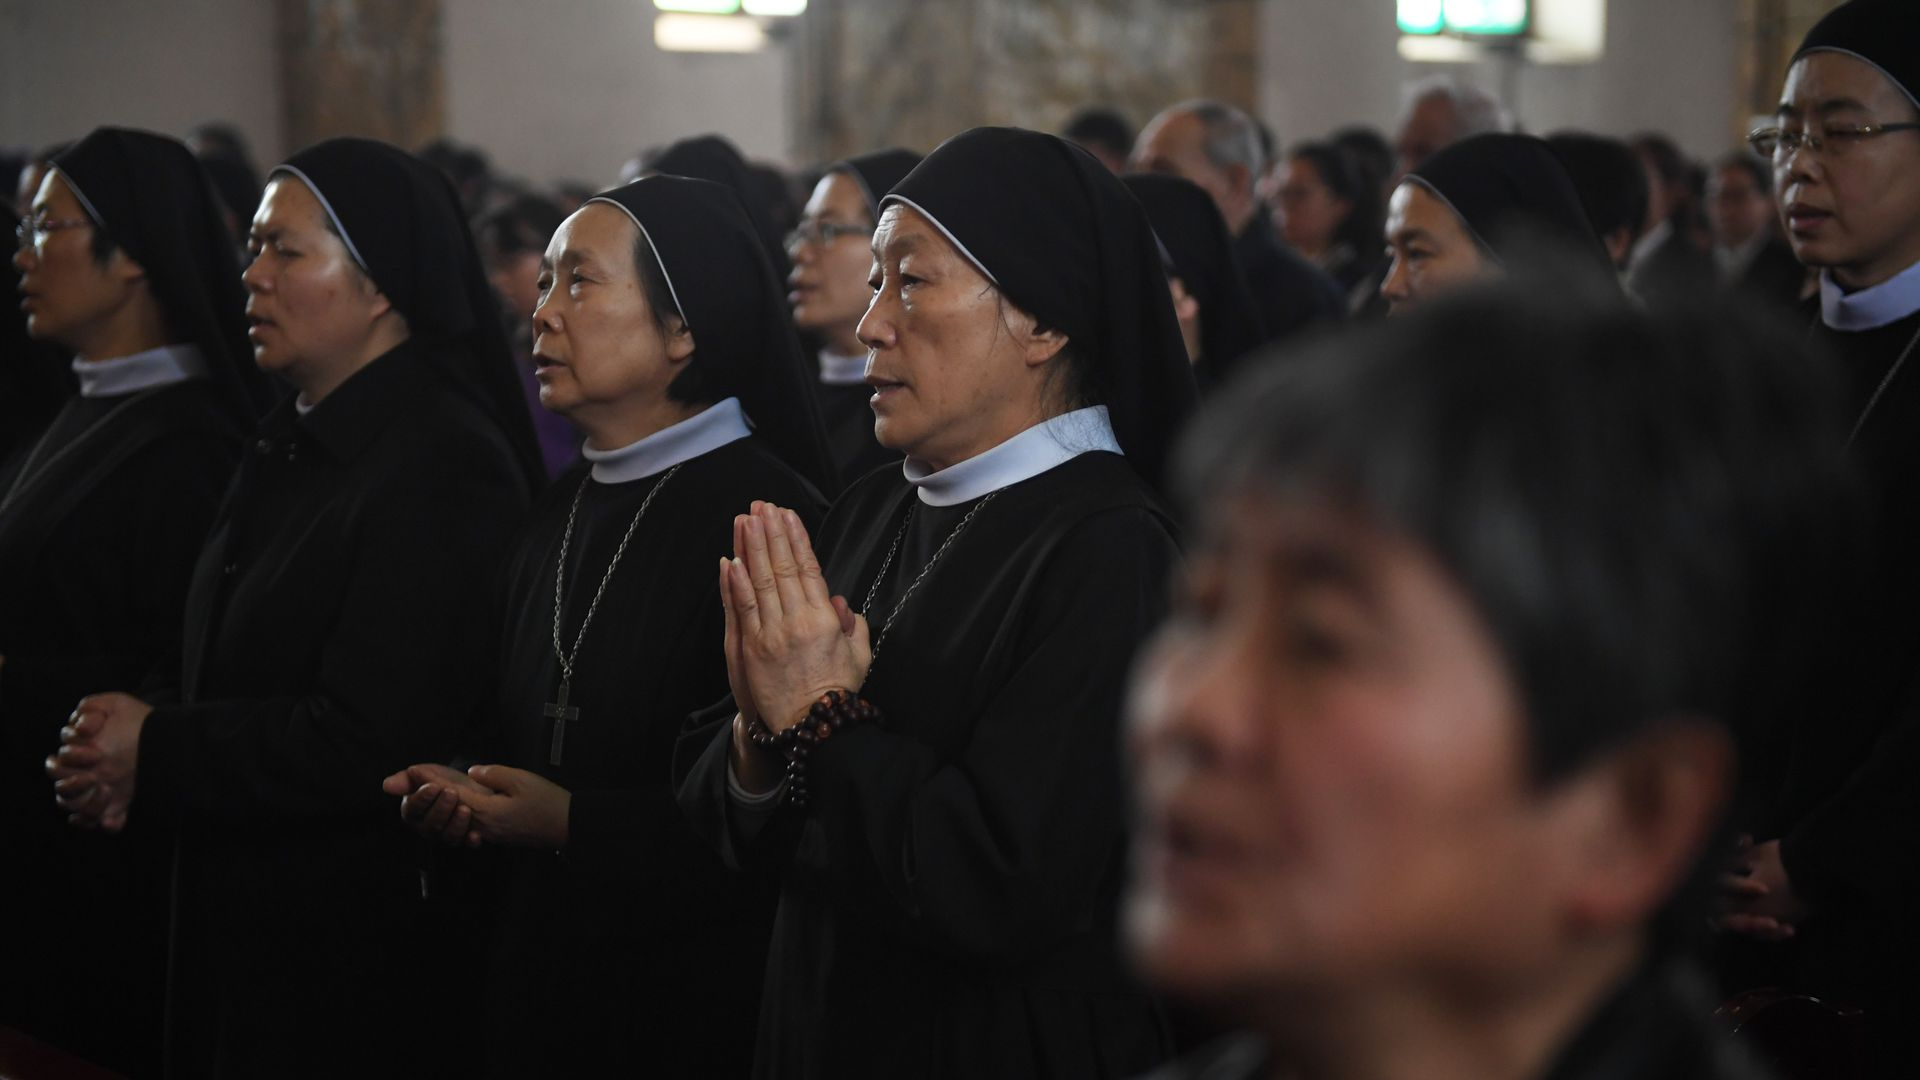 Catholic nuns at mass.